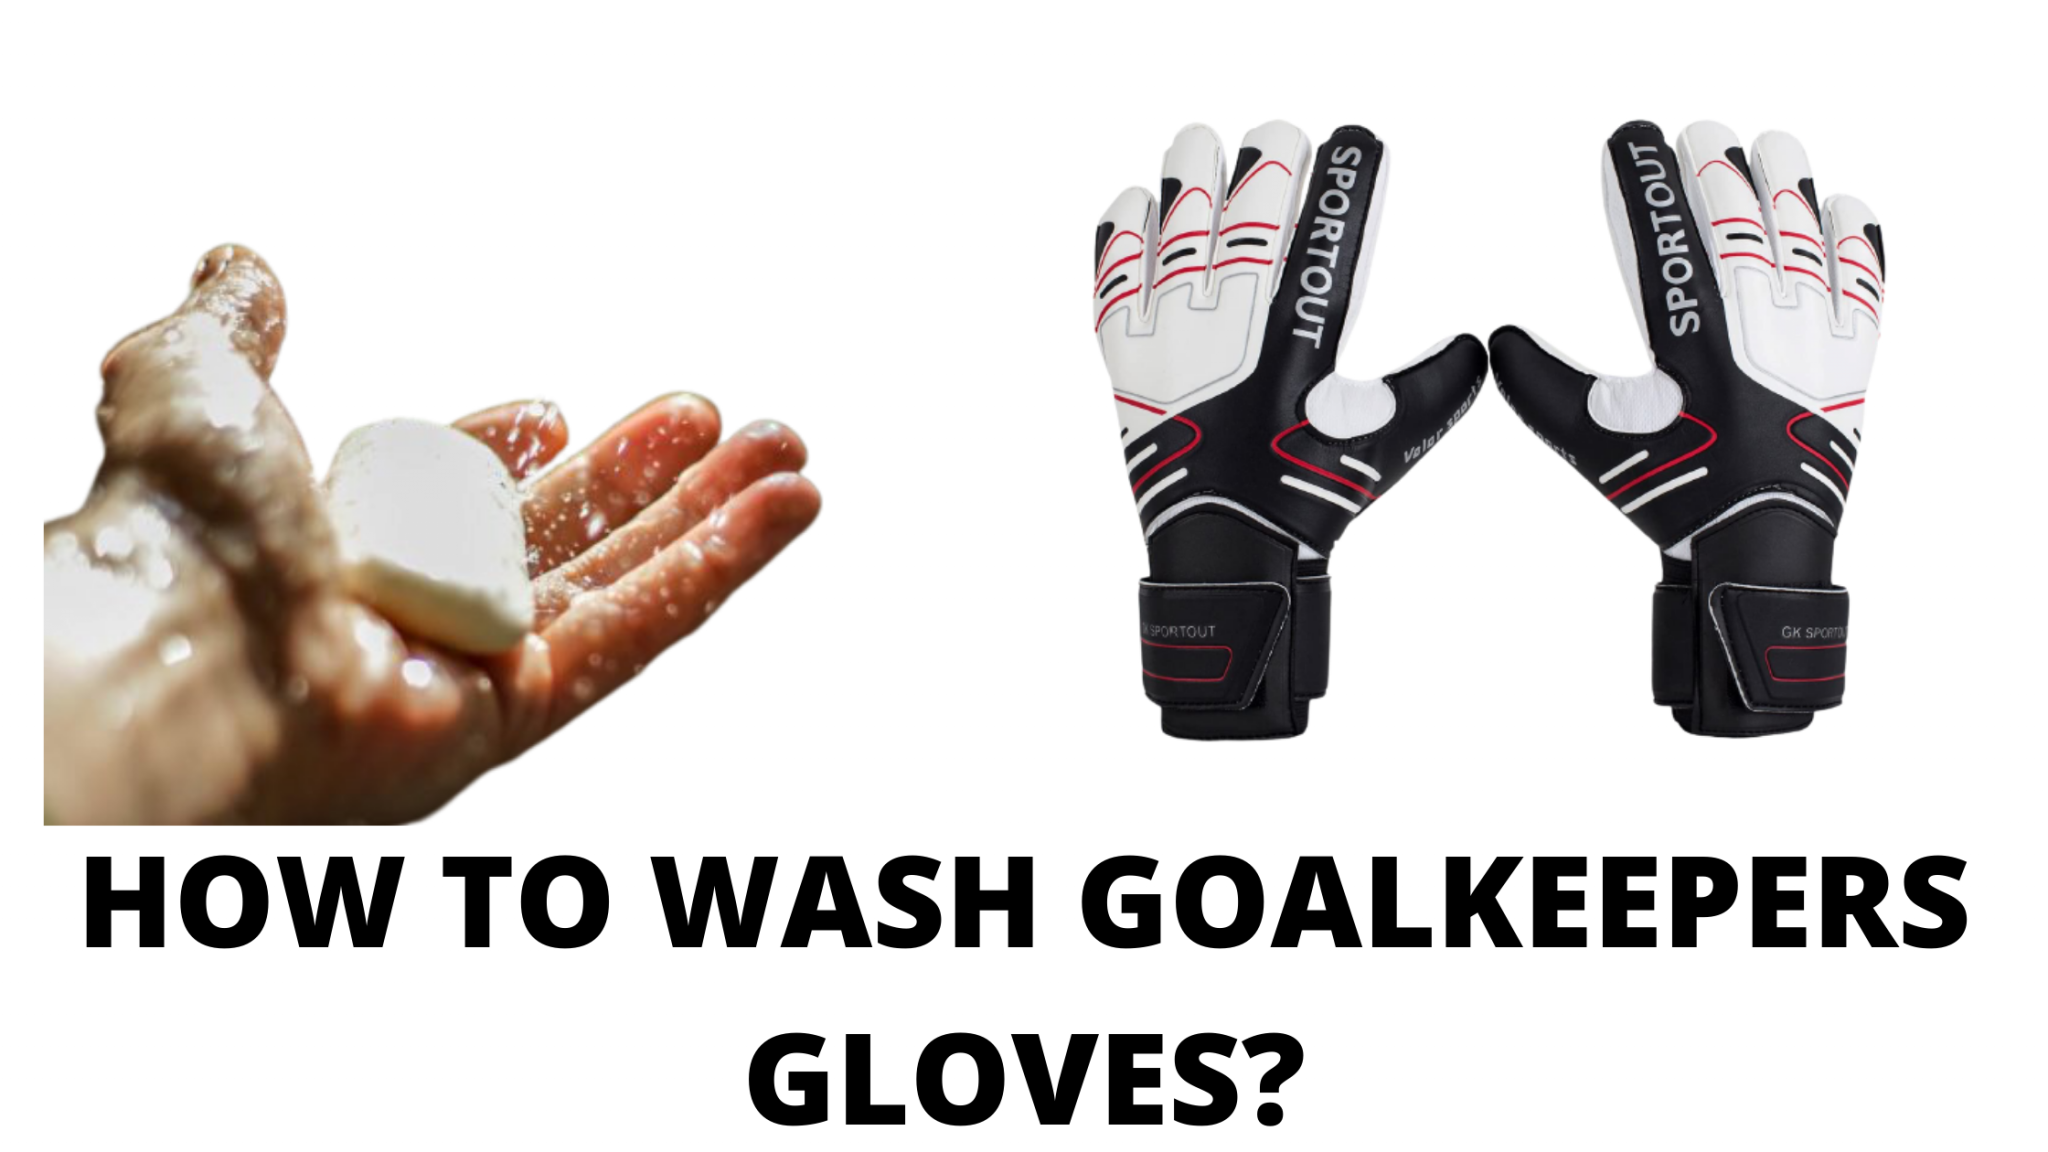 How to wash goal keepers gloves